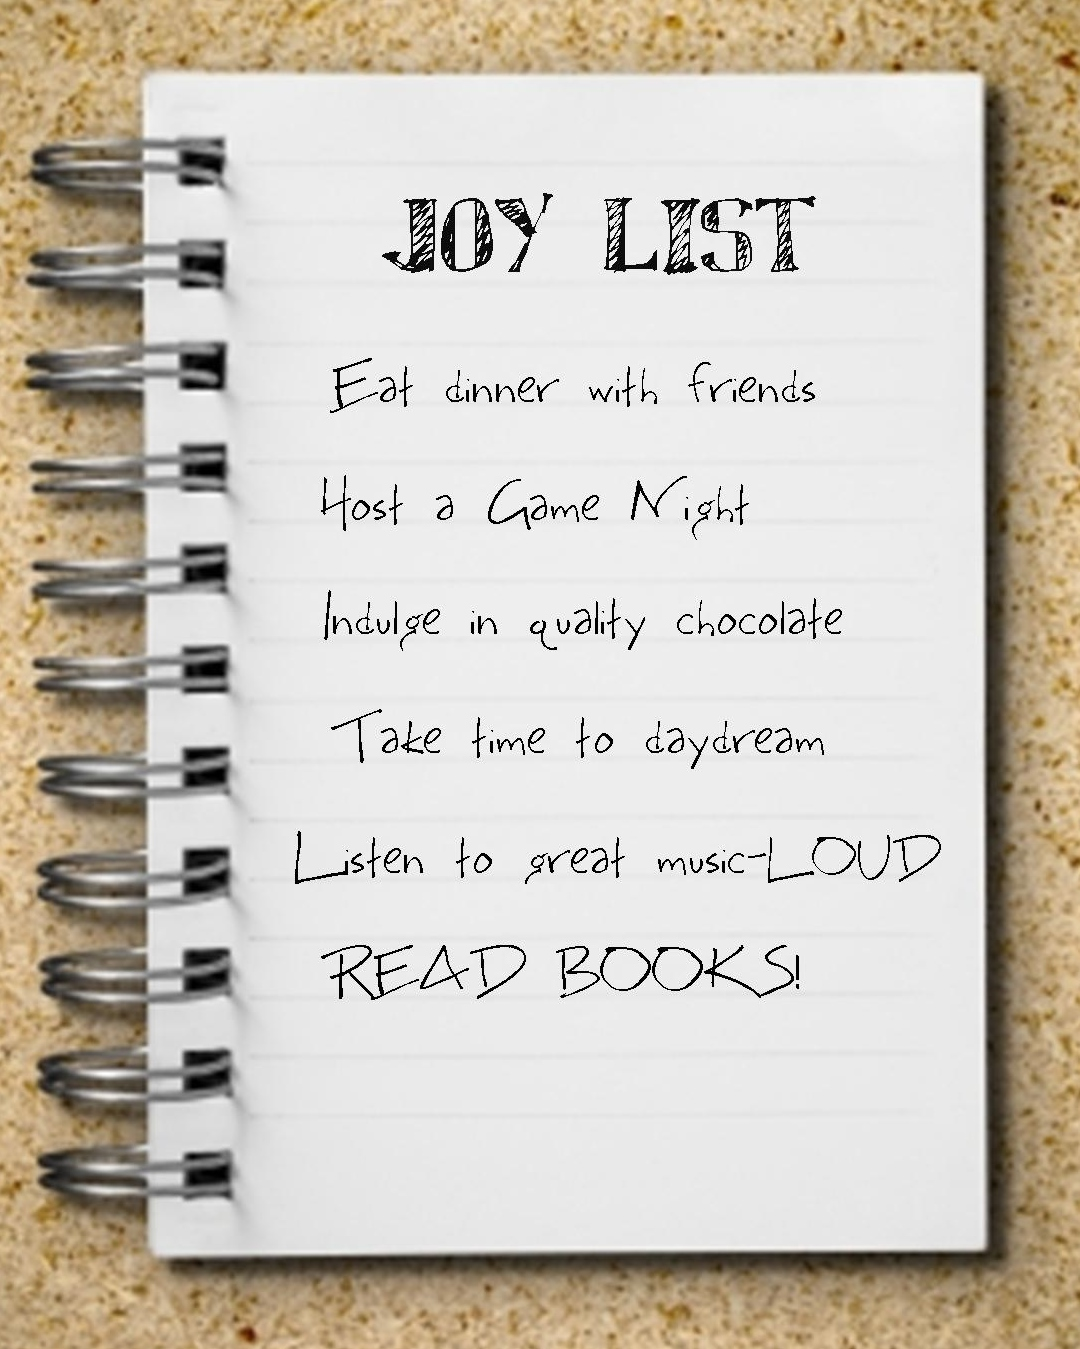 More Thoughts on a Joy List